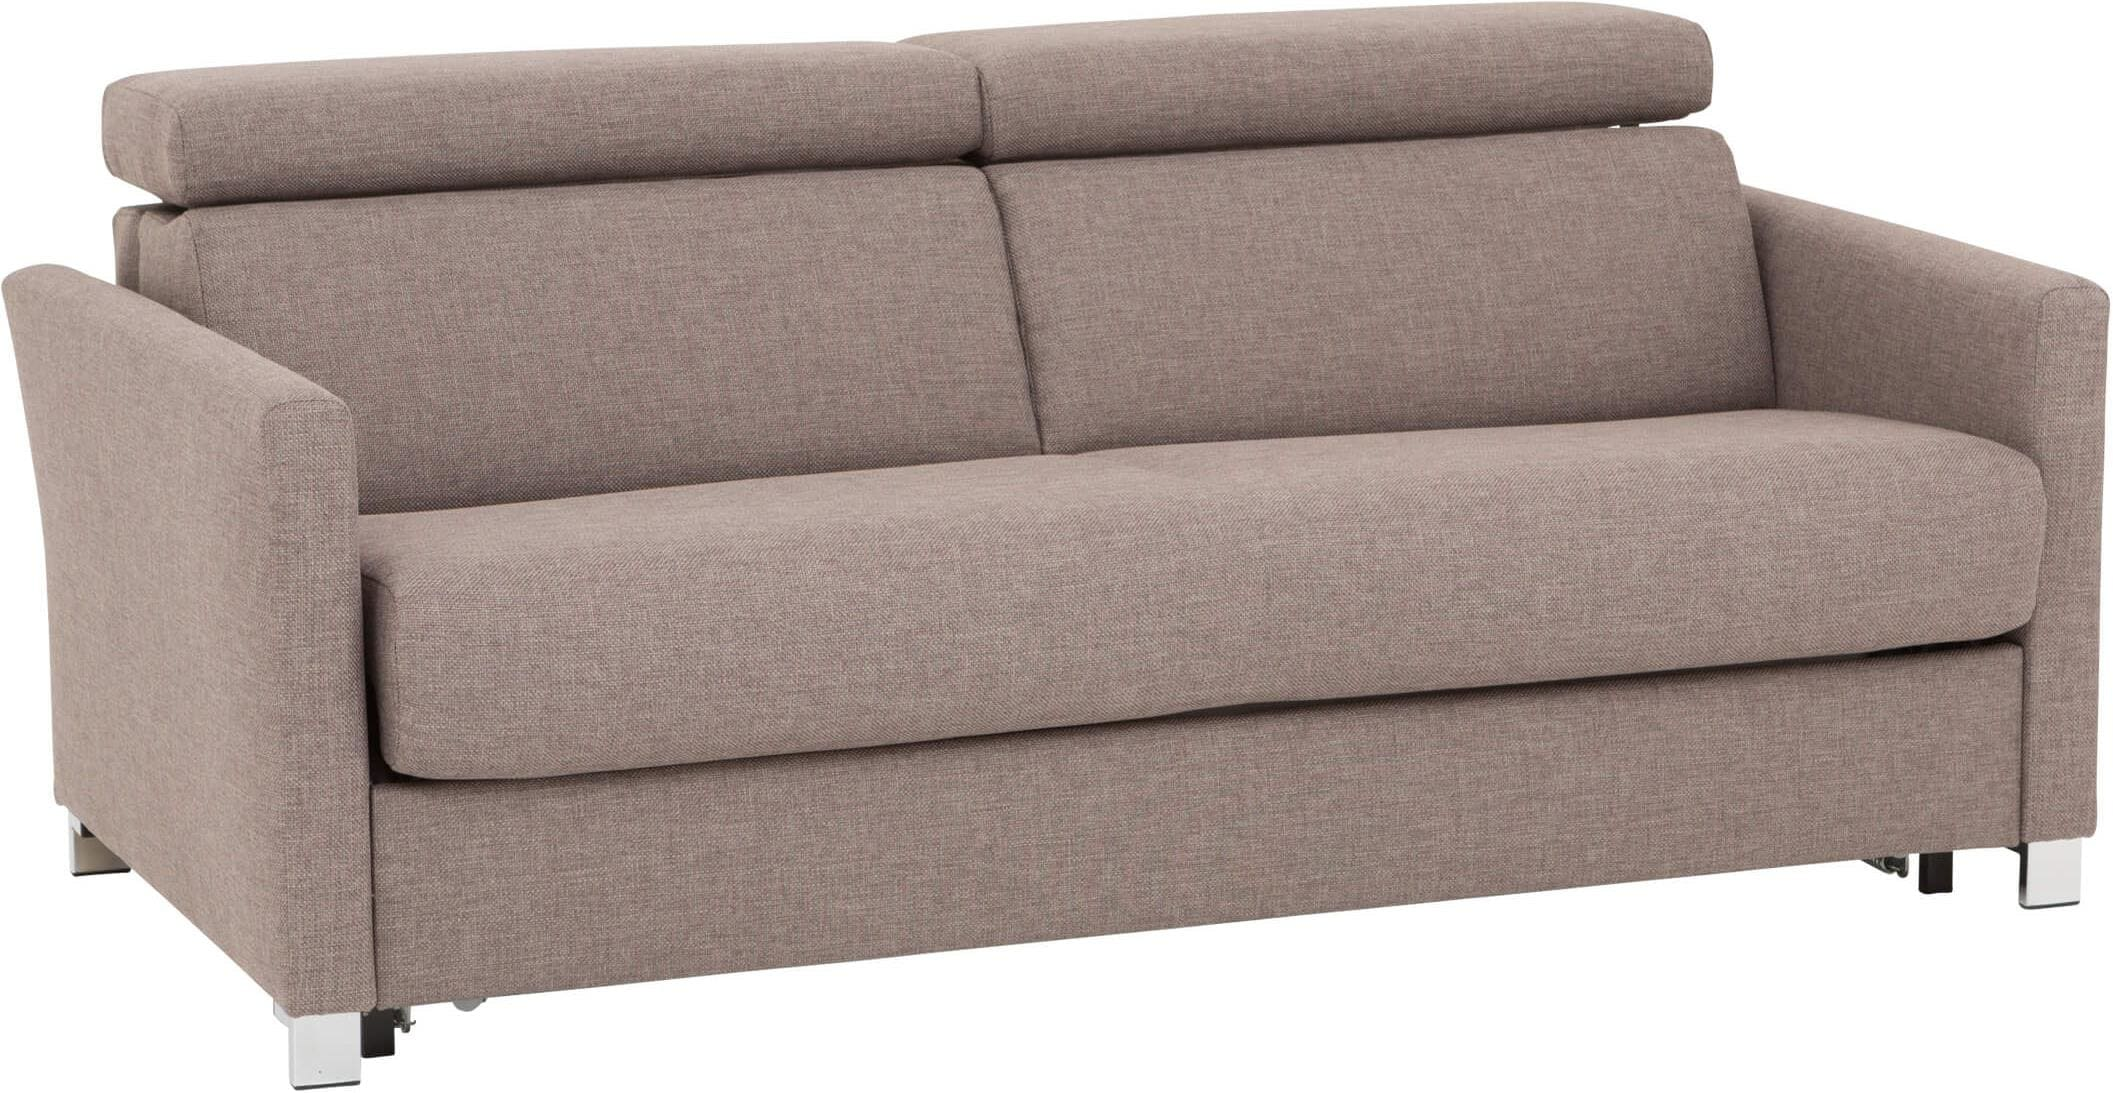 Bettsofa Schubiger Schubiger Möbel Selina Sofa Bed Brown Beige